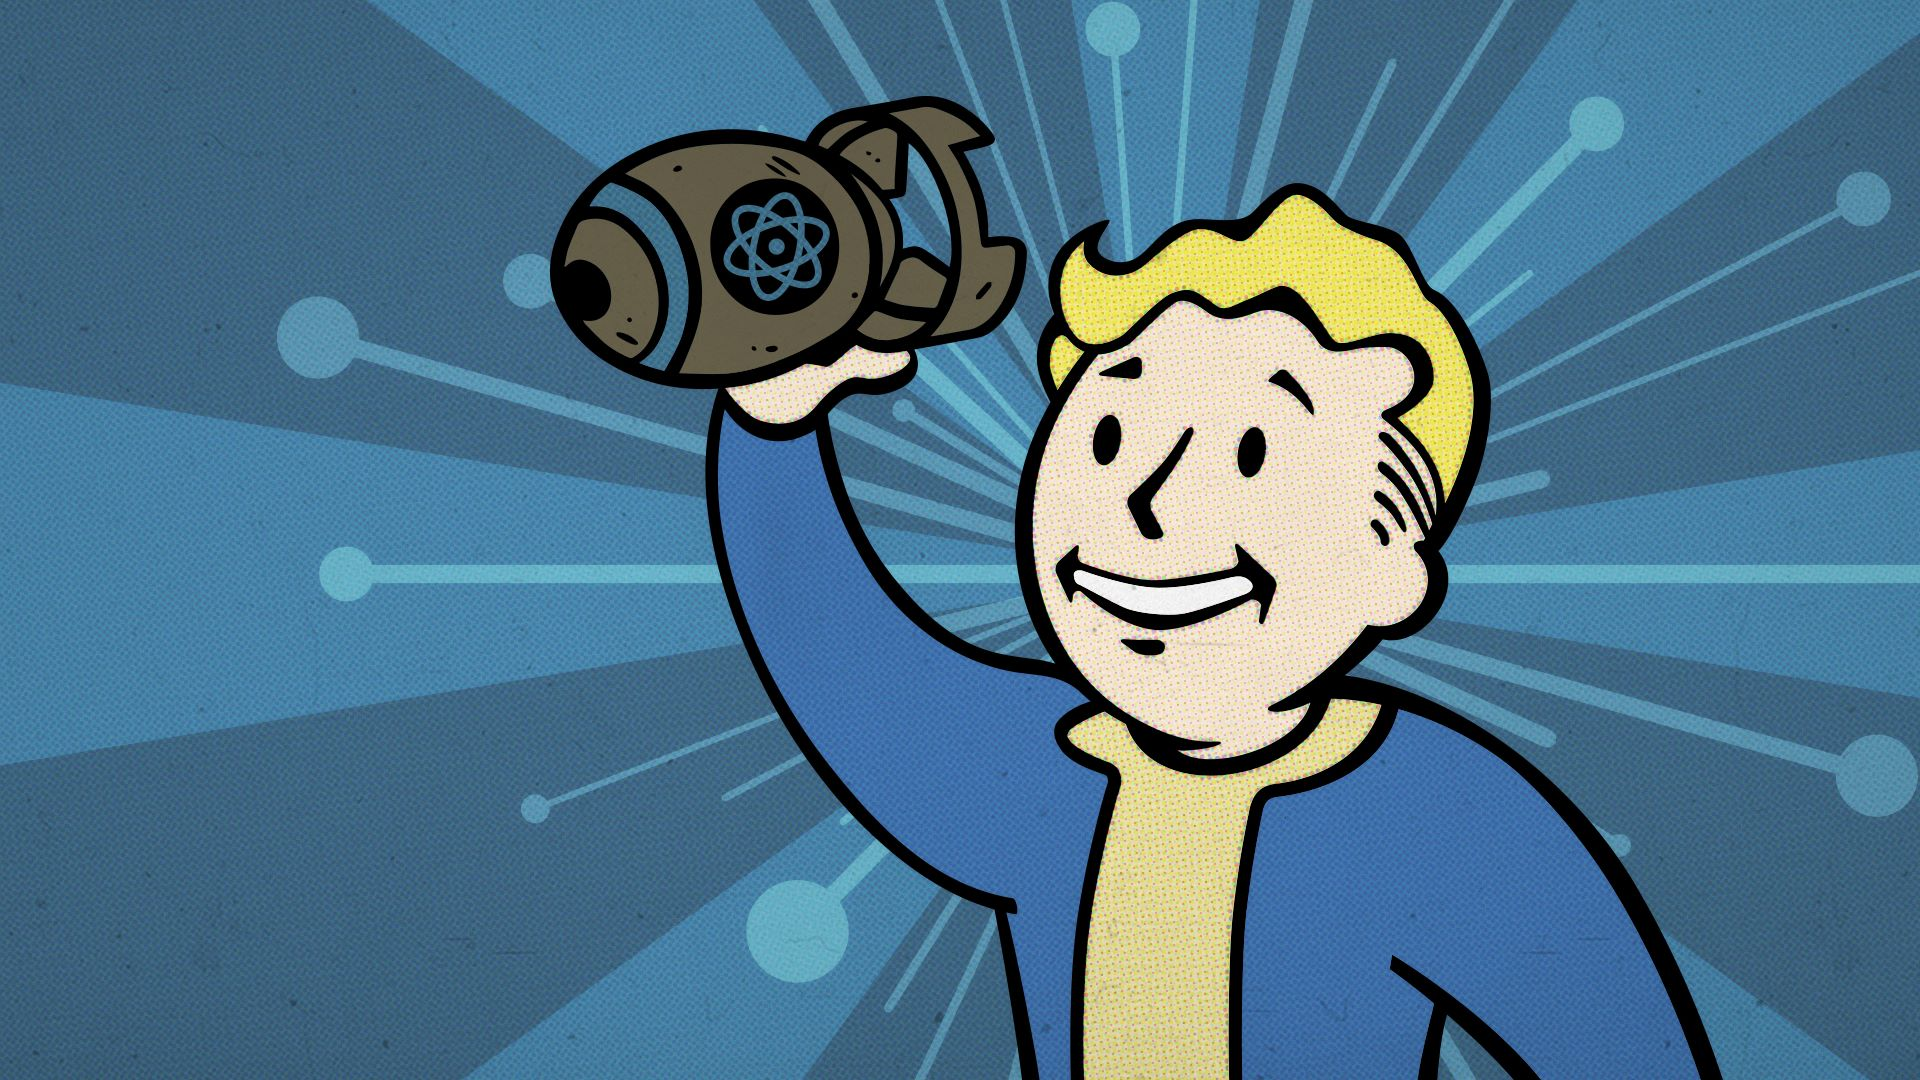 Fall Pc Wallpaper Consigue La Edici 243 N Digital De Fallout 76 Para Xbox One